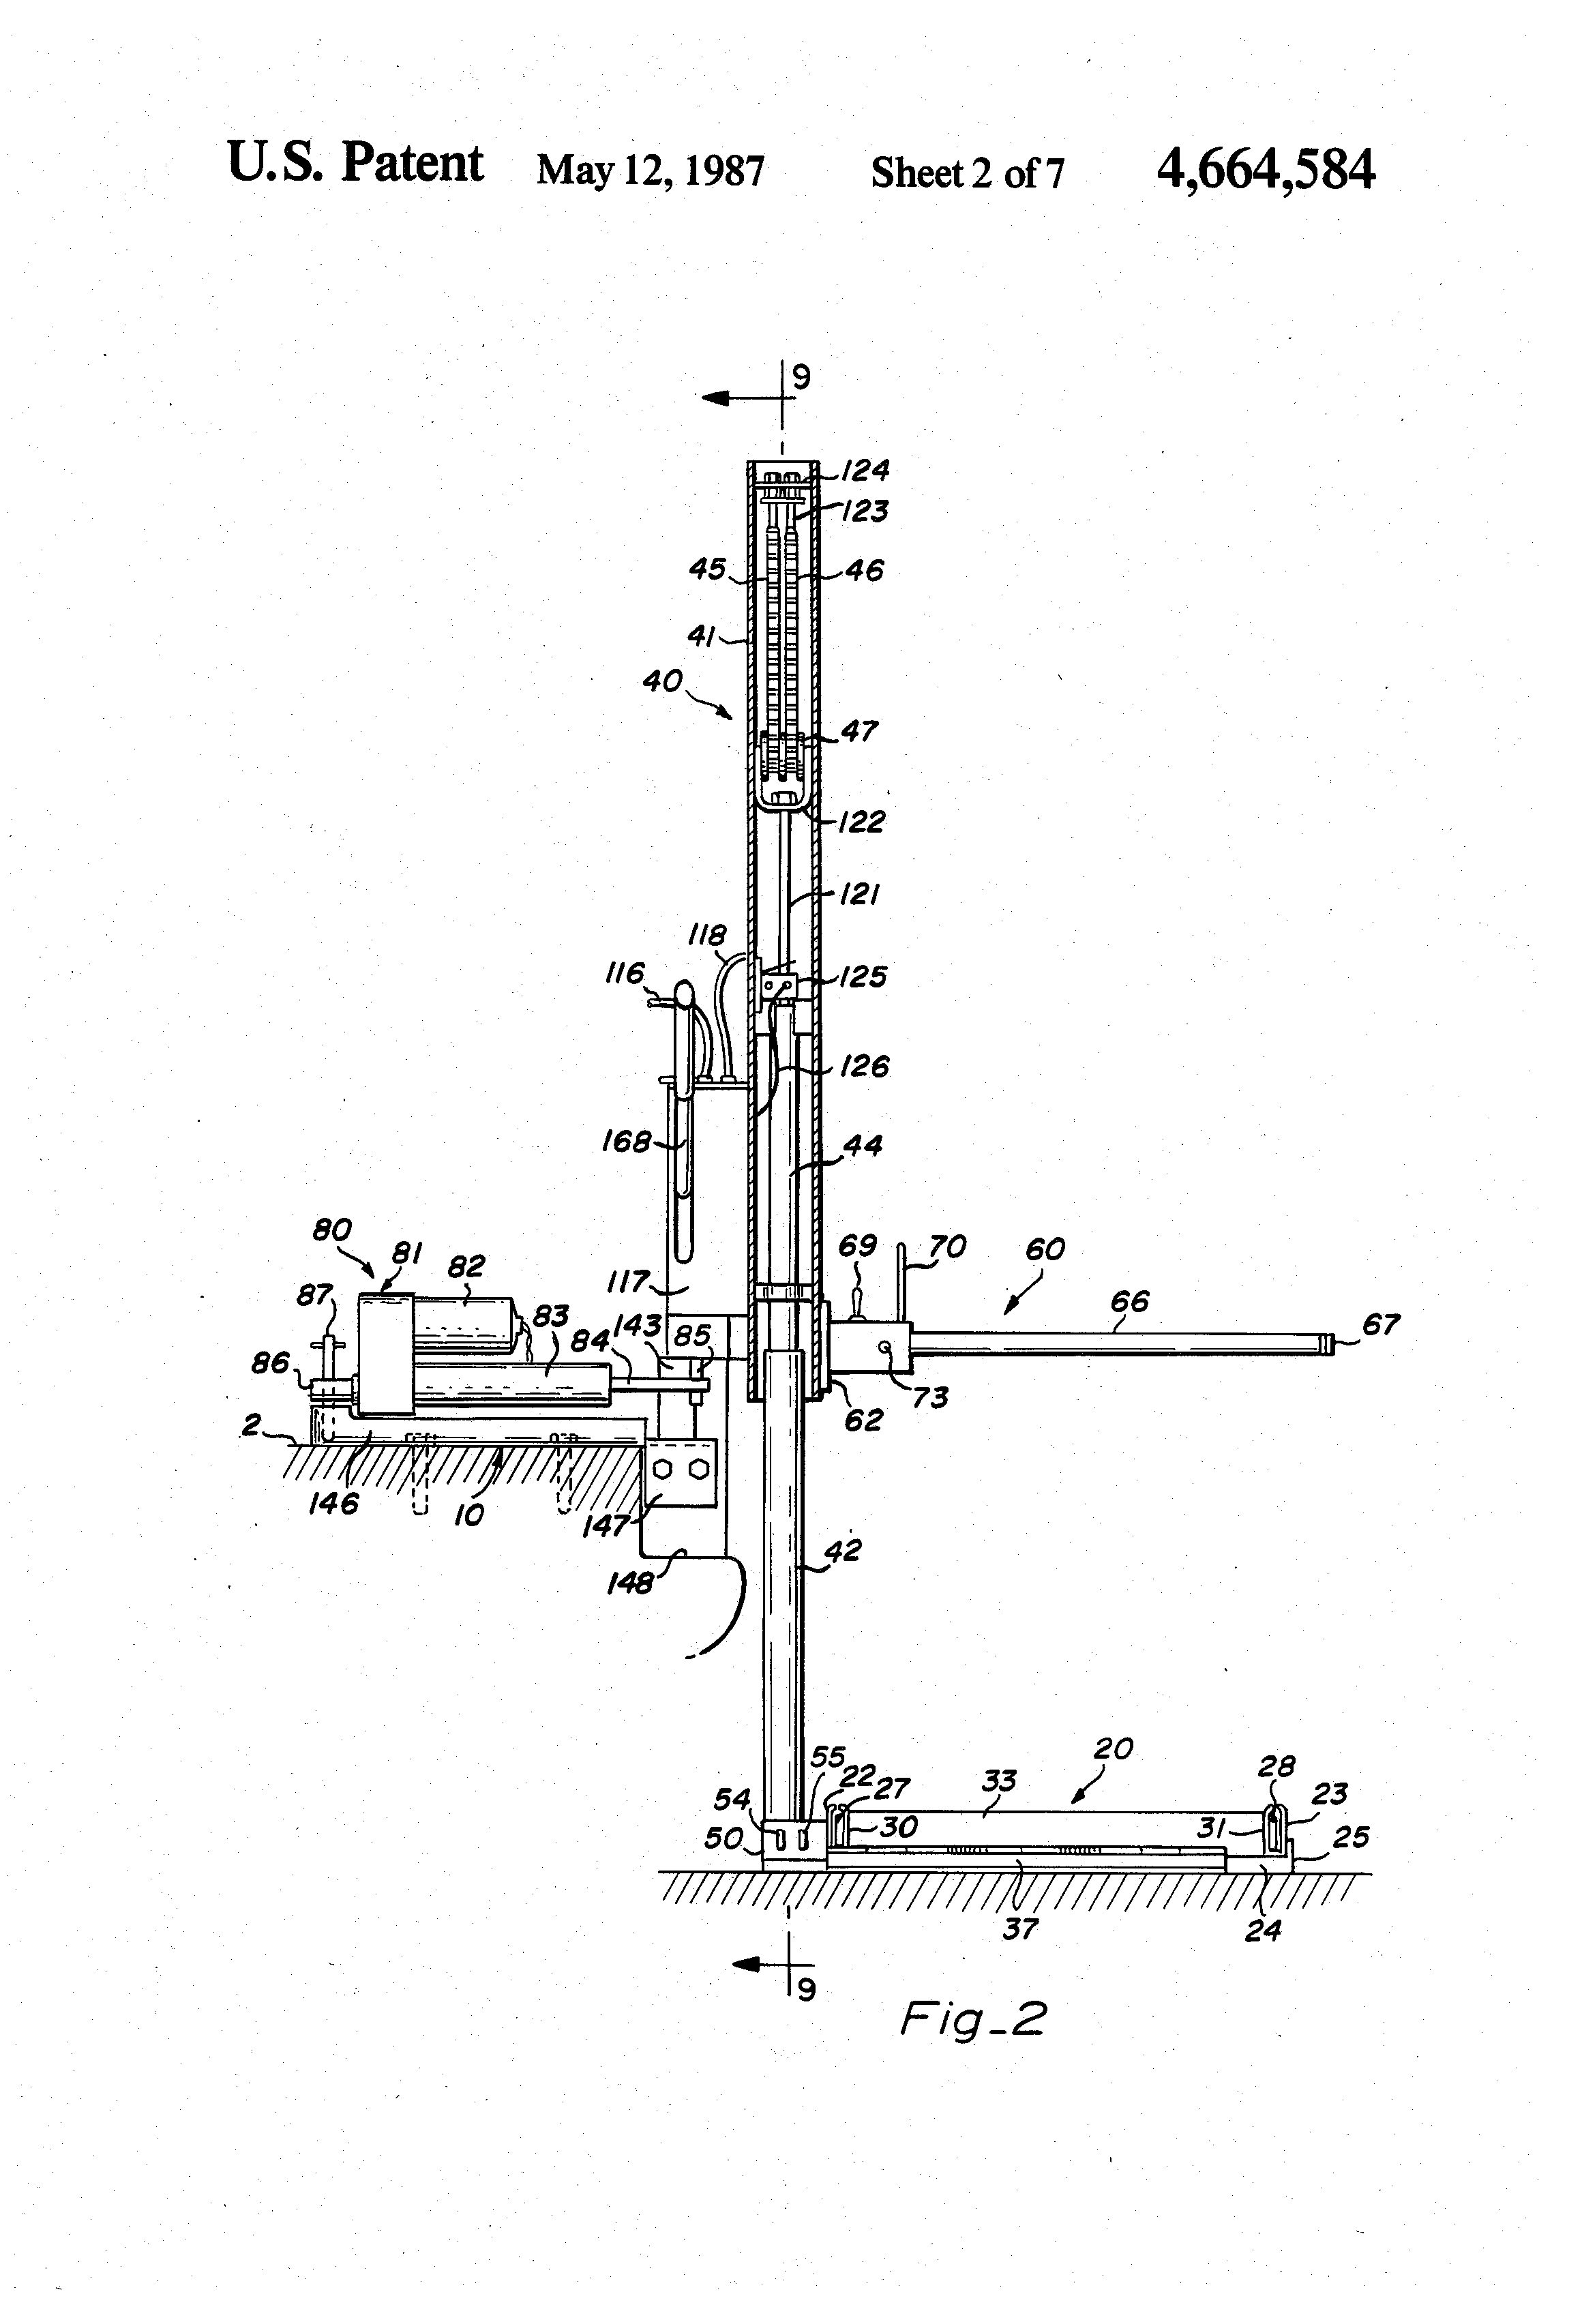 Braun Lift Wiring Diagrams